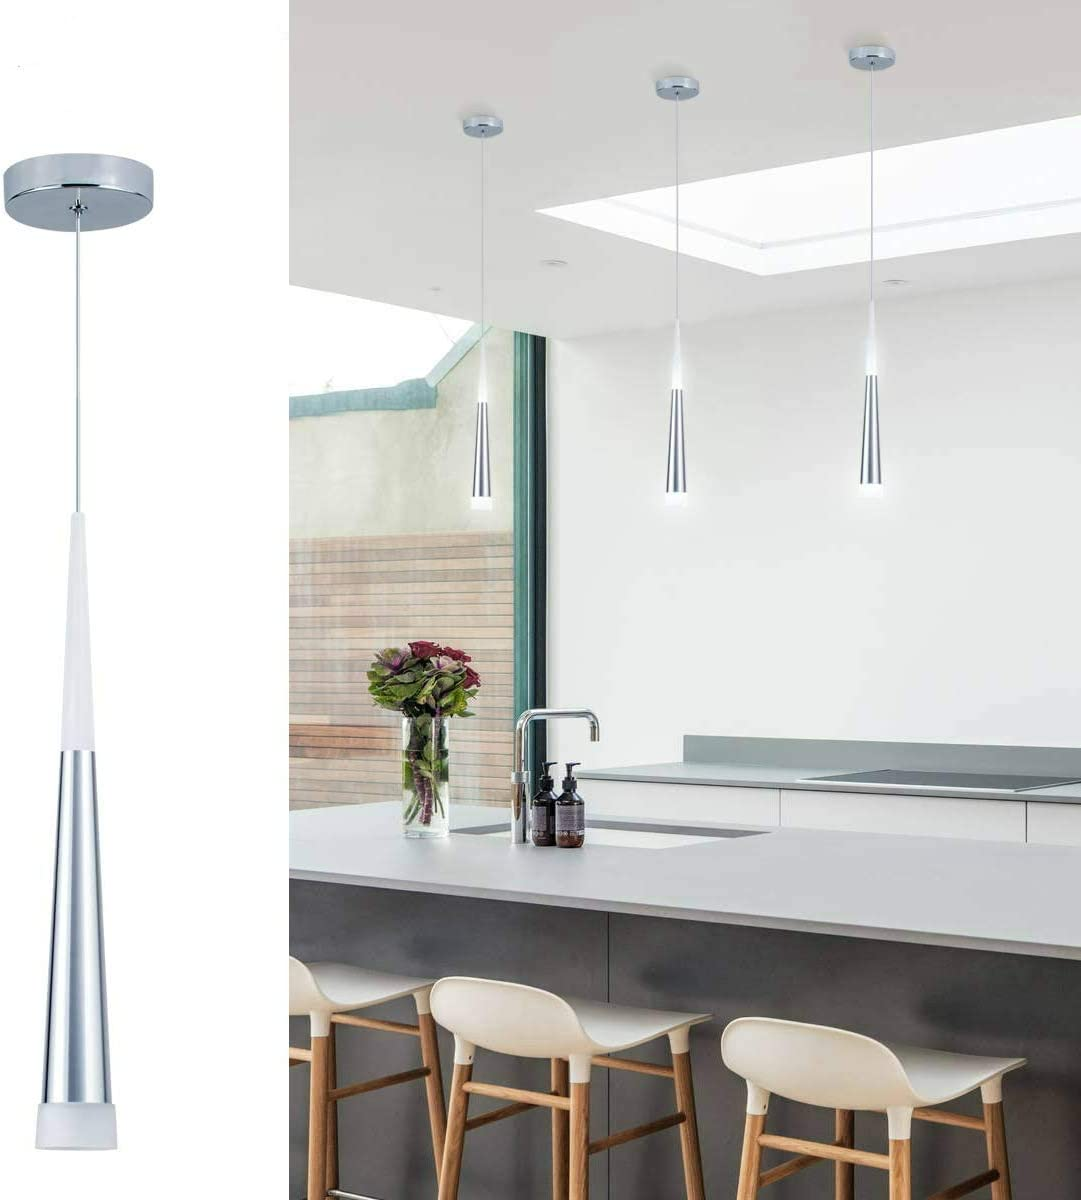 Bewamf Modern Mini Island Pendant Light with Acrylic Shade LED Cone  Contemporary Pendant Lighting for Kitchen Island Dining Room Living Room  Bar 9W ...